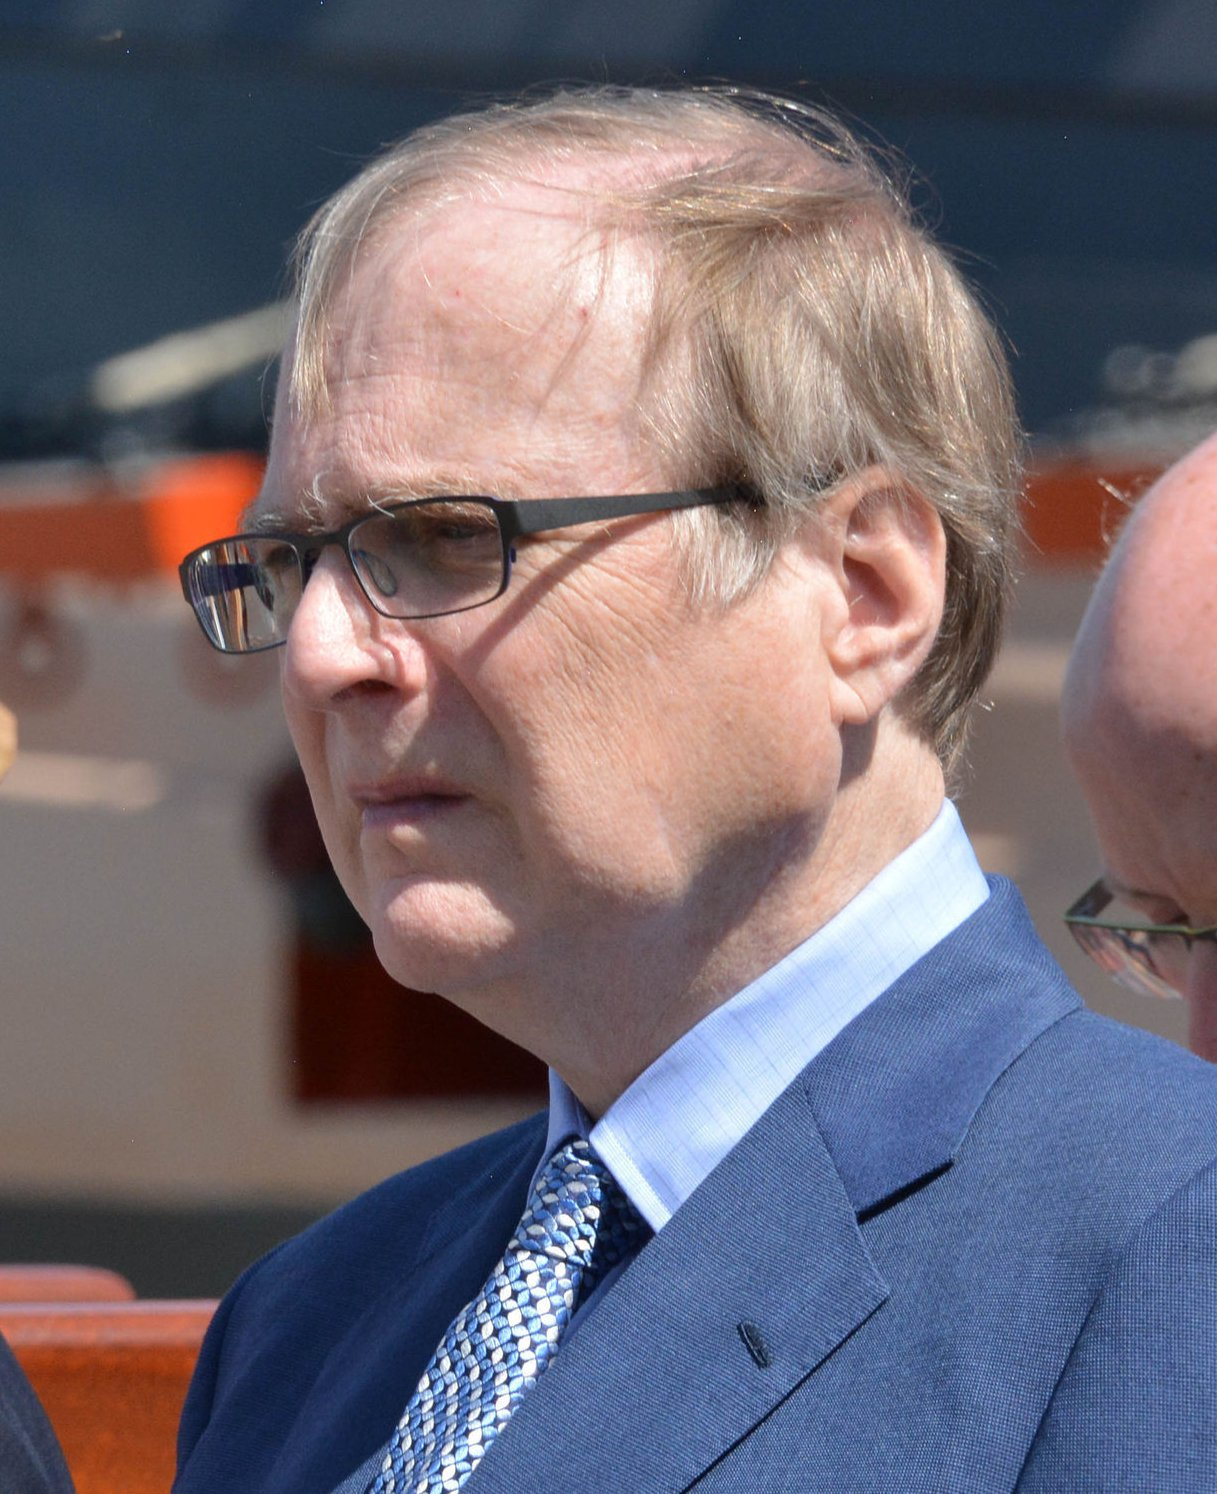 File photo dated 24/05/16 of Microsoft co-founder Paul Allen attending the unveiling of the bell from HMS Hood at Portsmouth Historic Dockyard, to mark the 75th anniversary of the Royal Navy's largest loss of life from a single vessel. Mr Allen has died aged 65. PRESS ASSOCIATION Photo. Issue date: Monday October 15, 2018. See PA story US Allen. Photo credit should read: Ben Mitchell/PA Wire